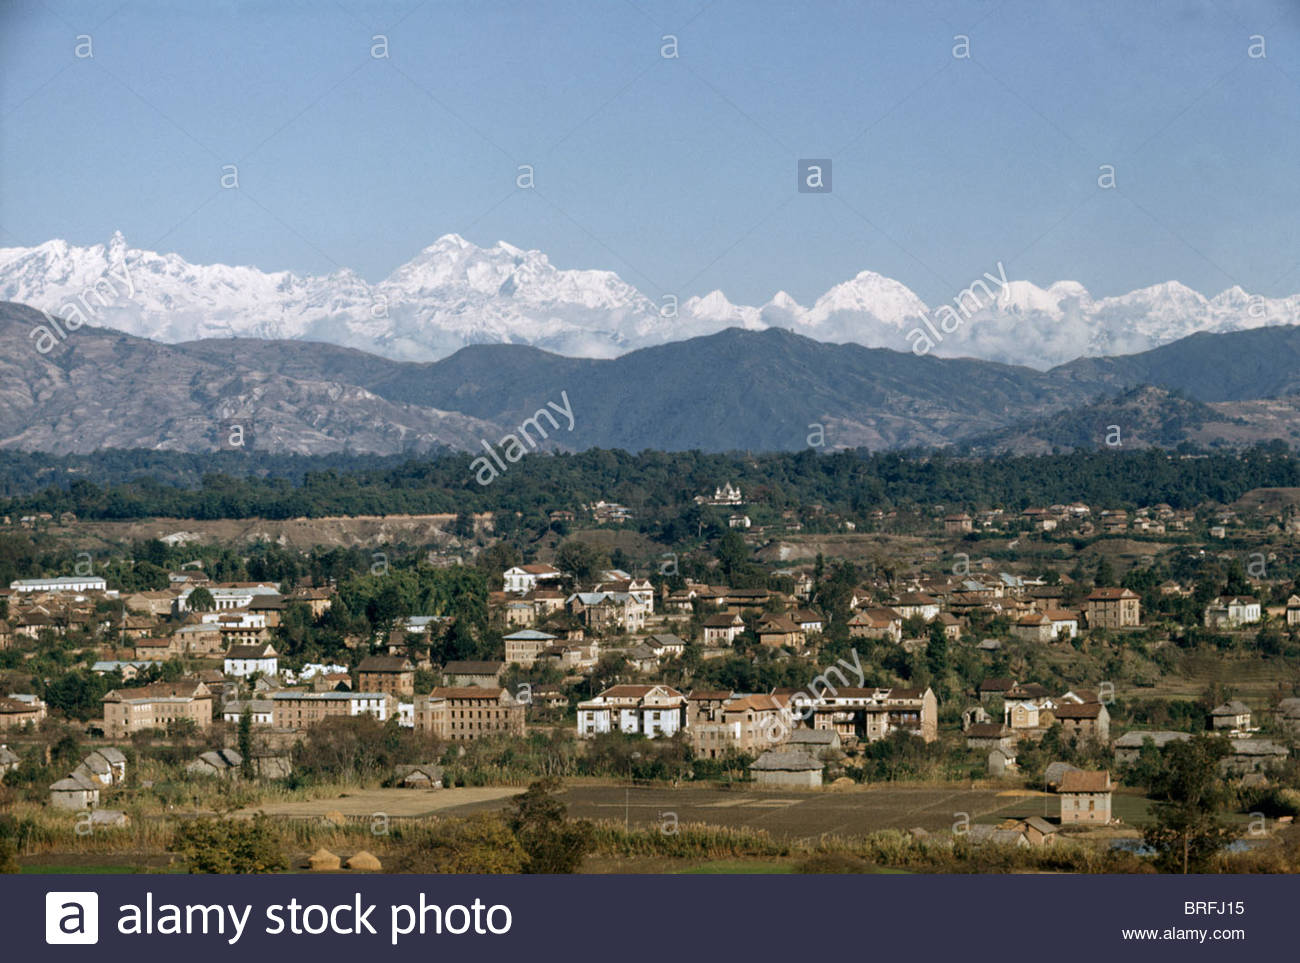 Katmandu sits in a valley; distant snowy mountains line horizon. - Stock Image